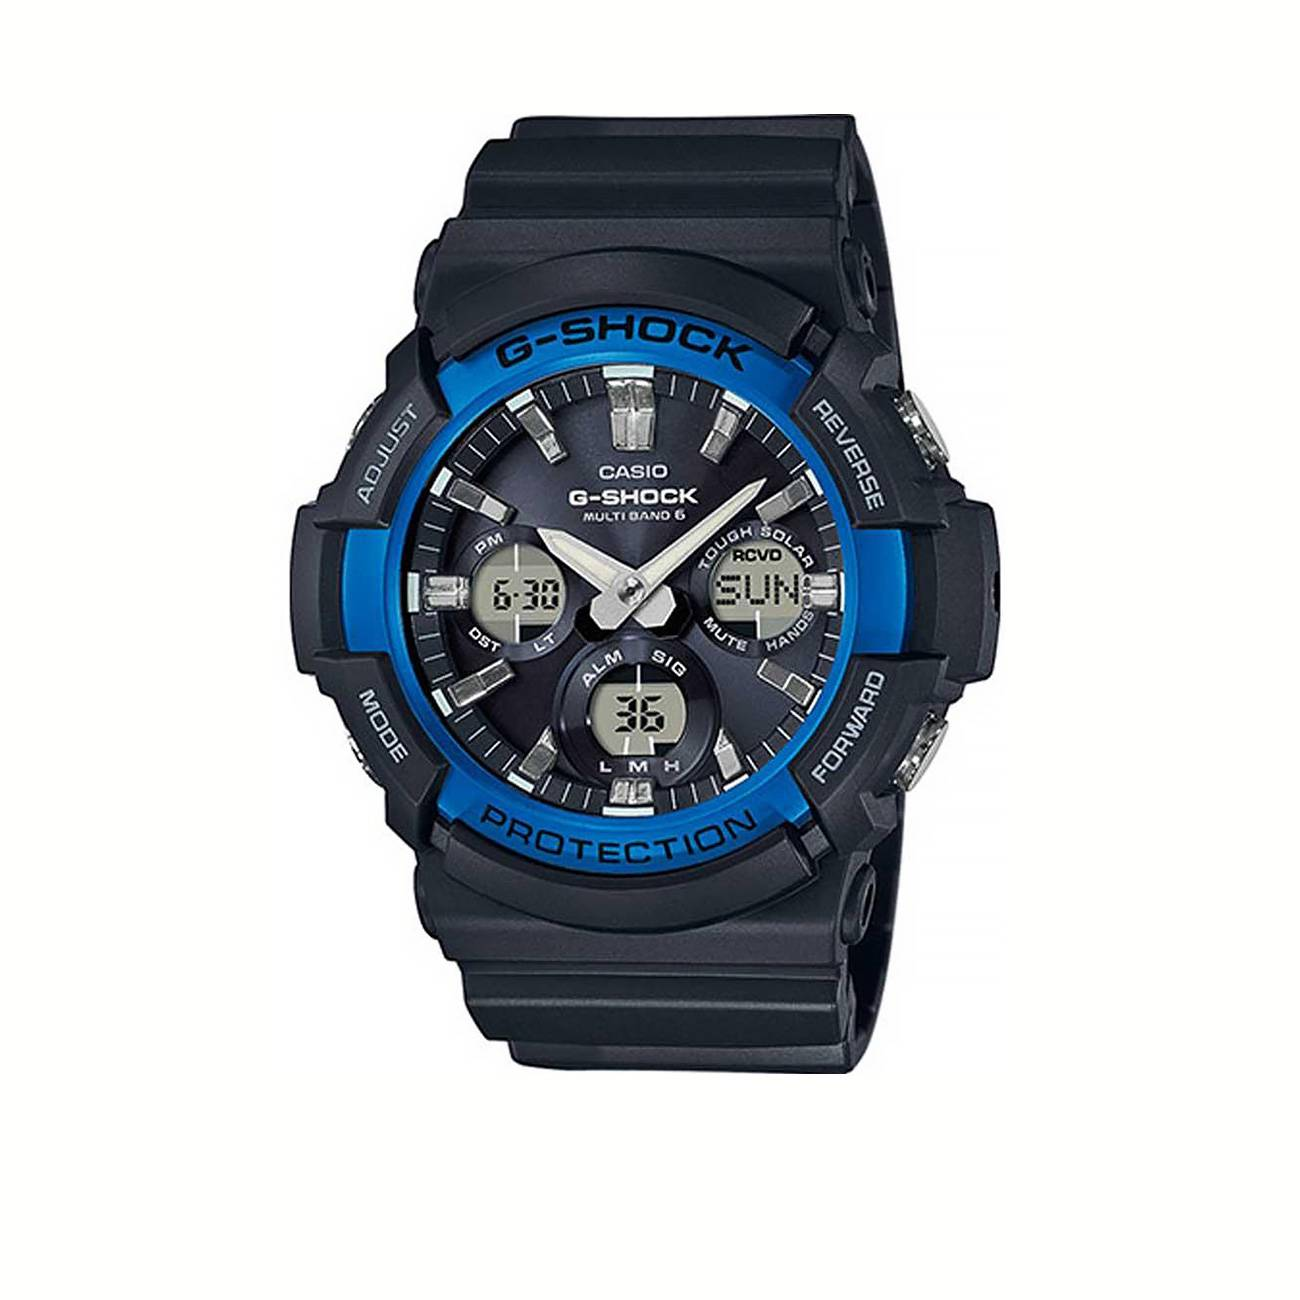 G-SHOCK GAW-100B-1A2ER imagine produs